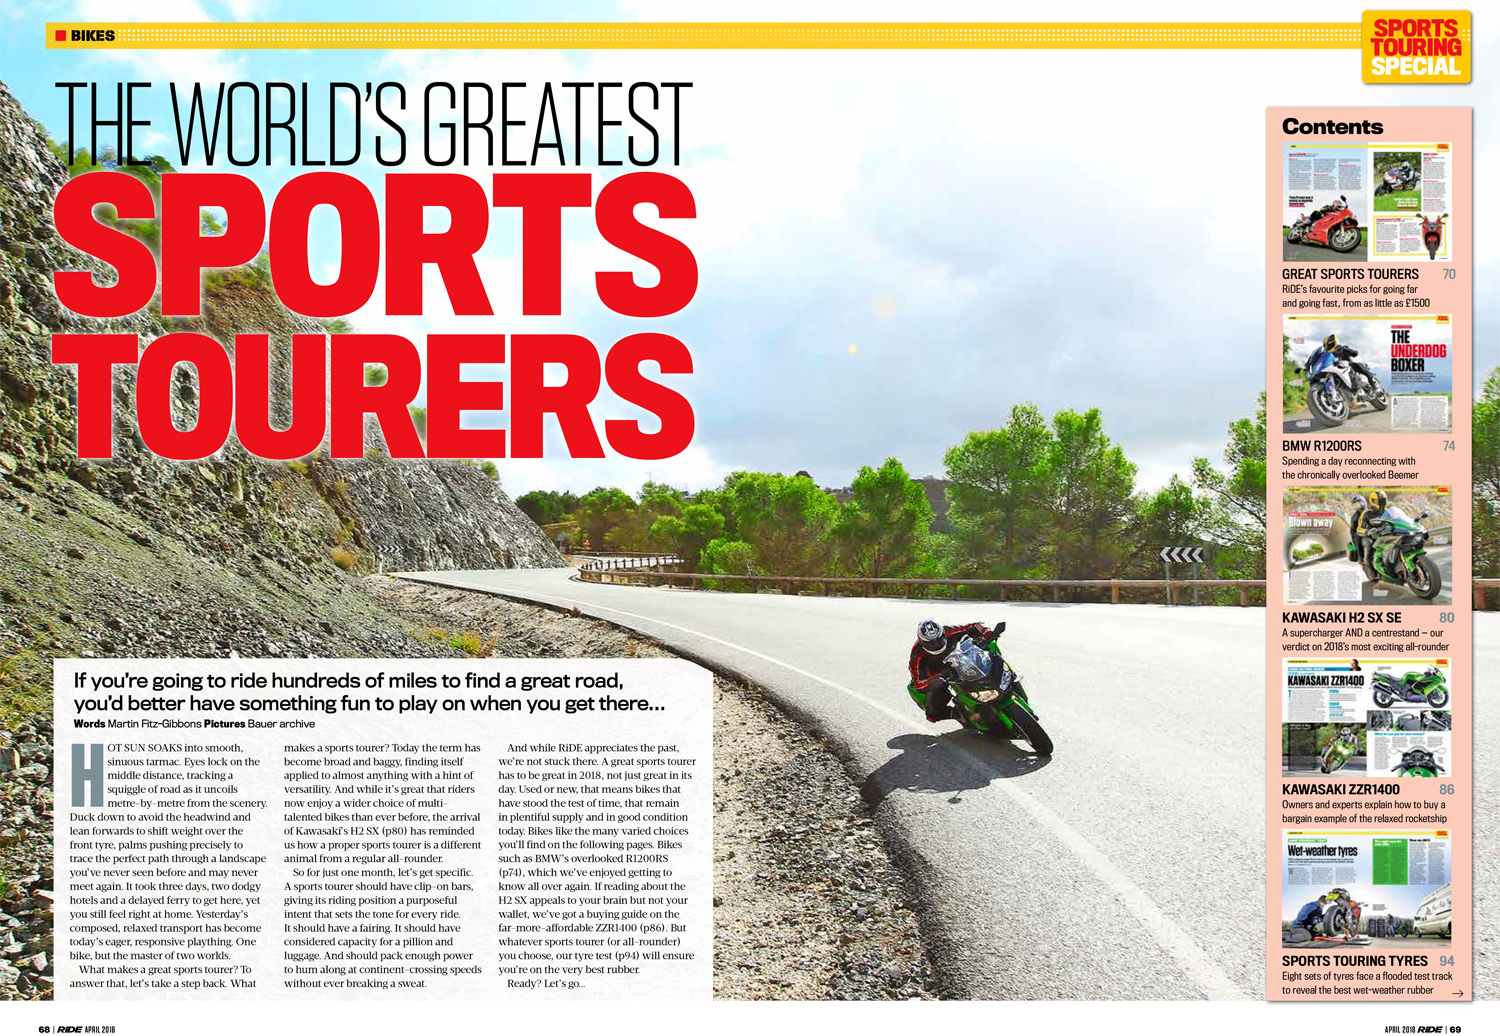 Great-sports-tourers